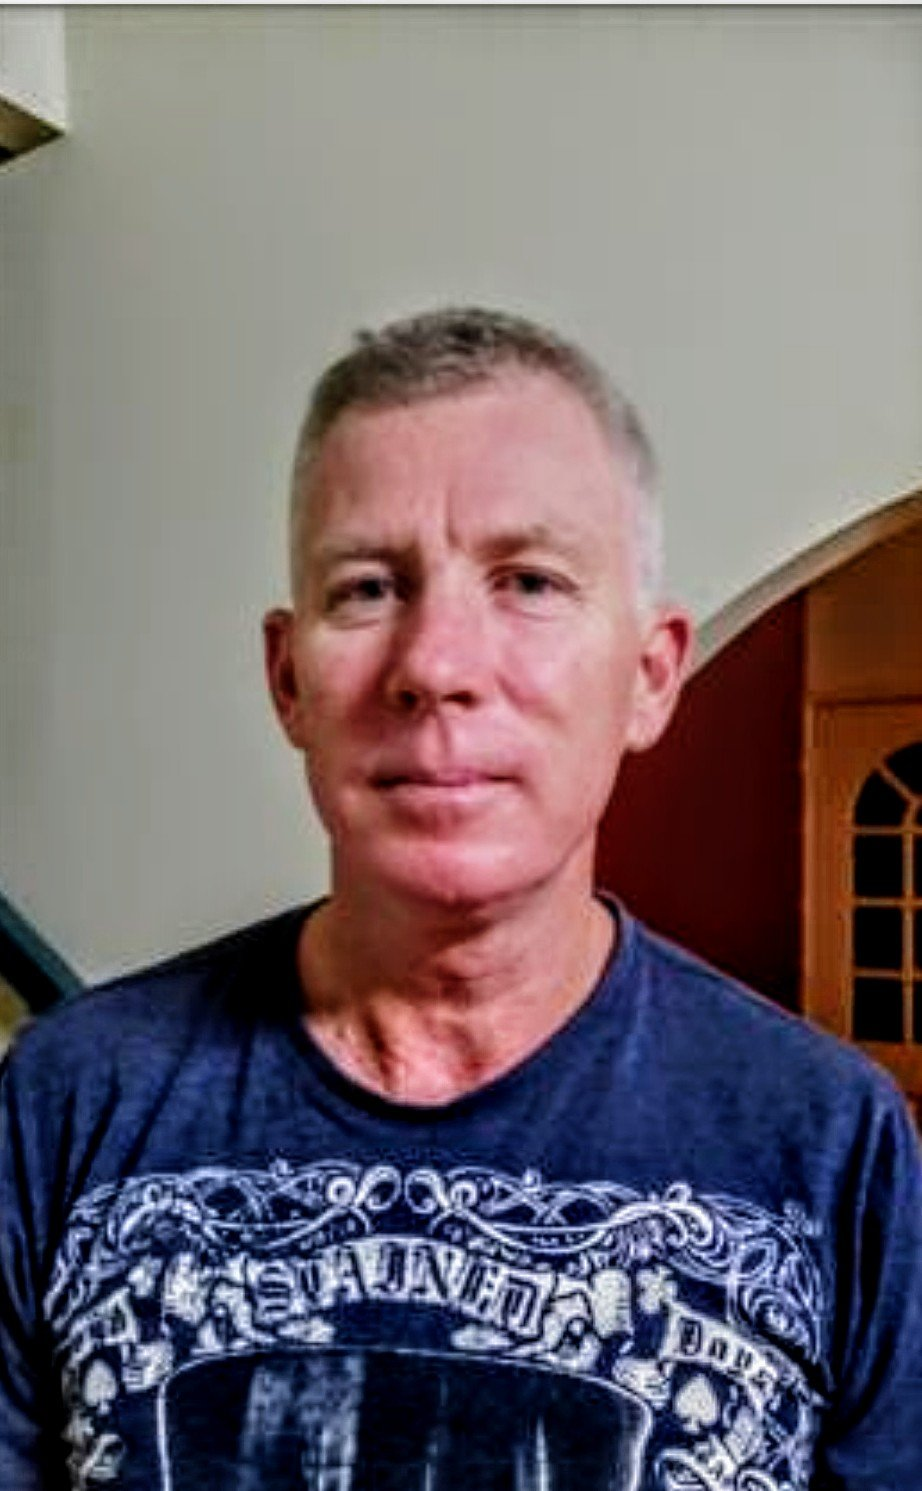 Rob69 from Queensland,Australia